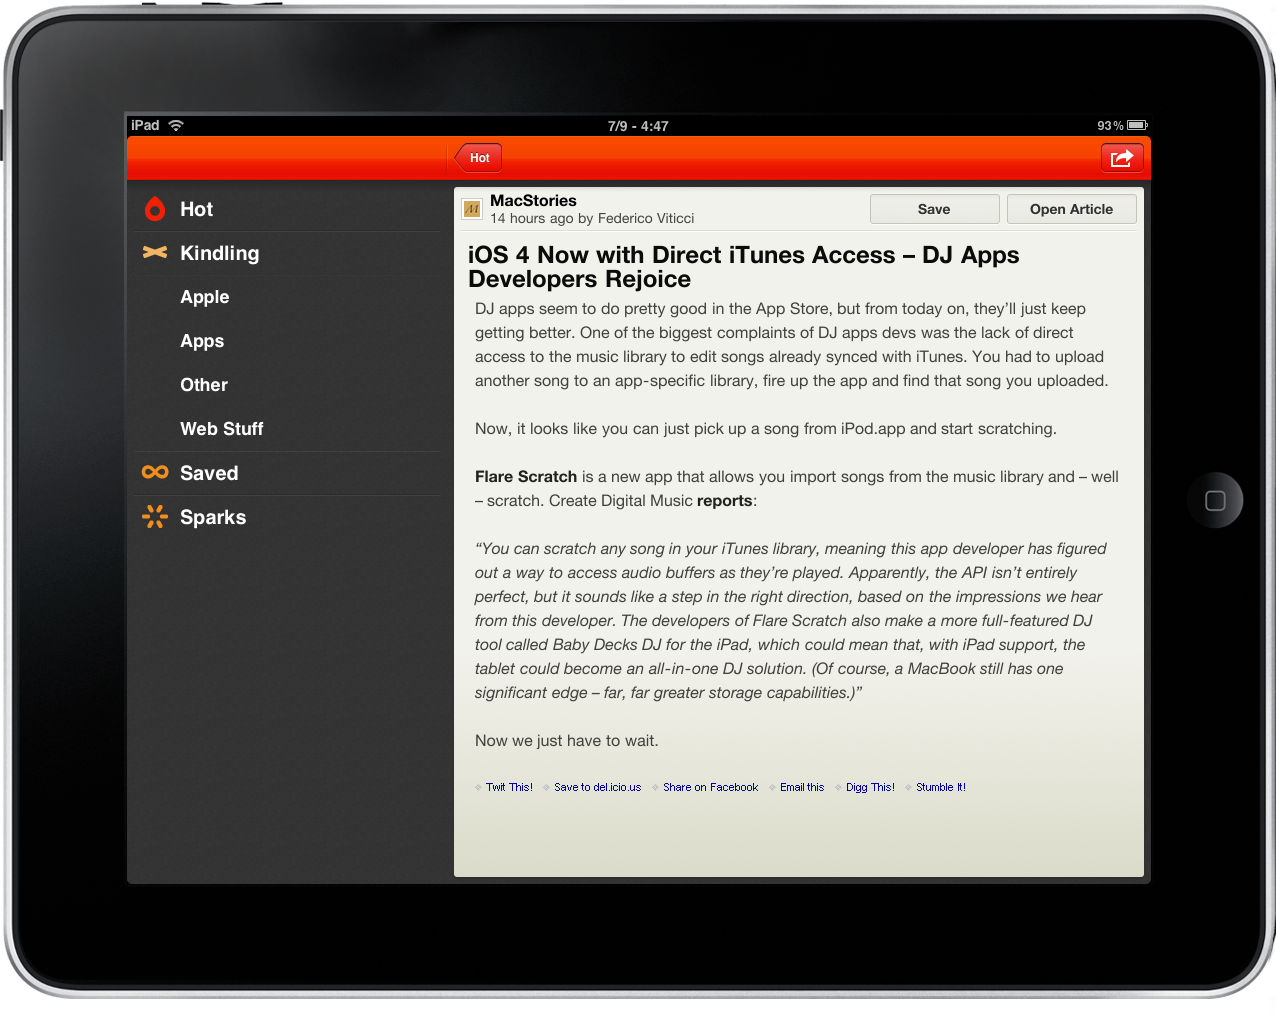 Ashes for iPad - MacStories